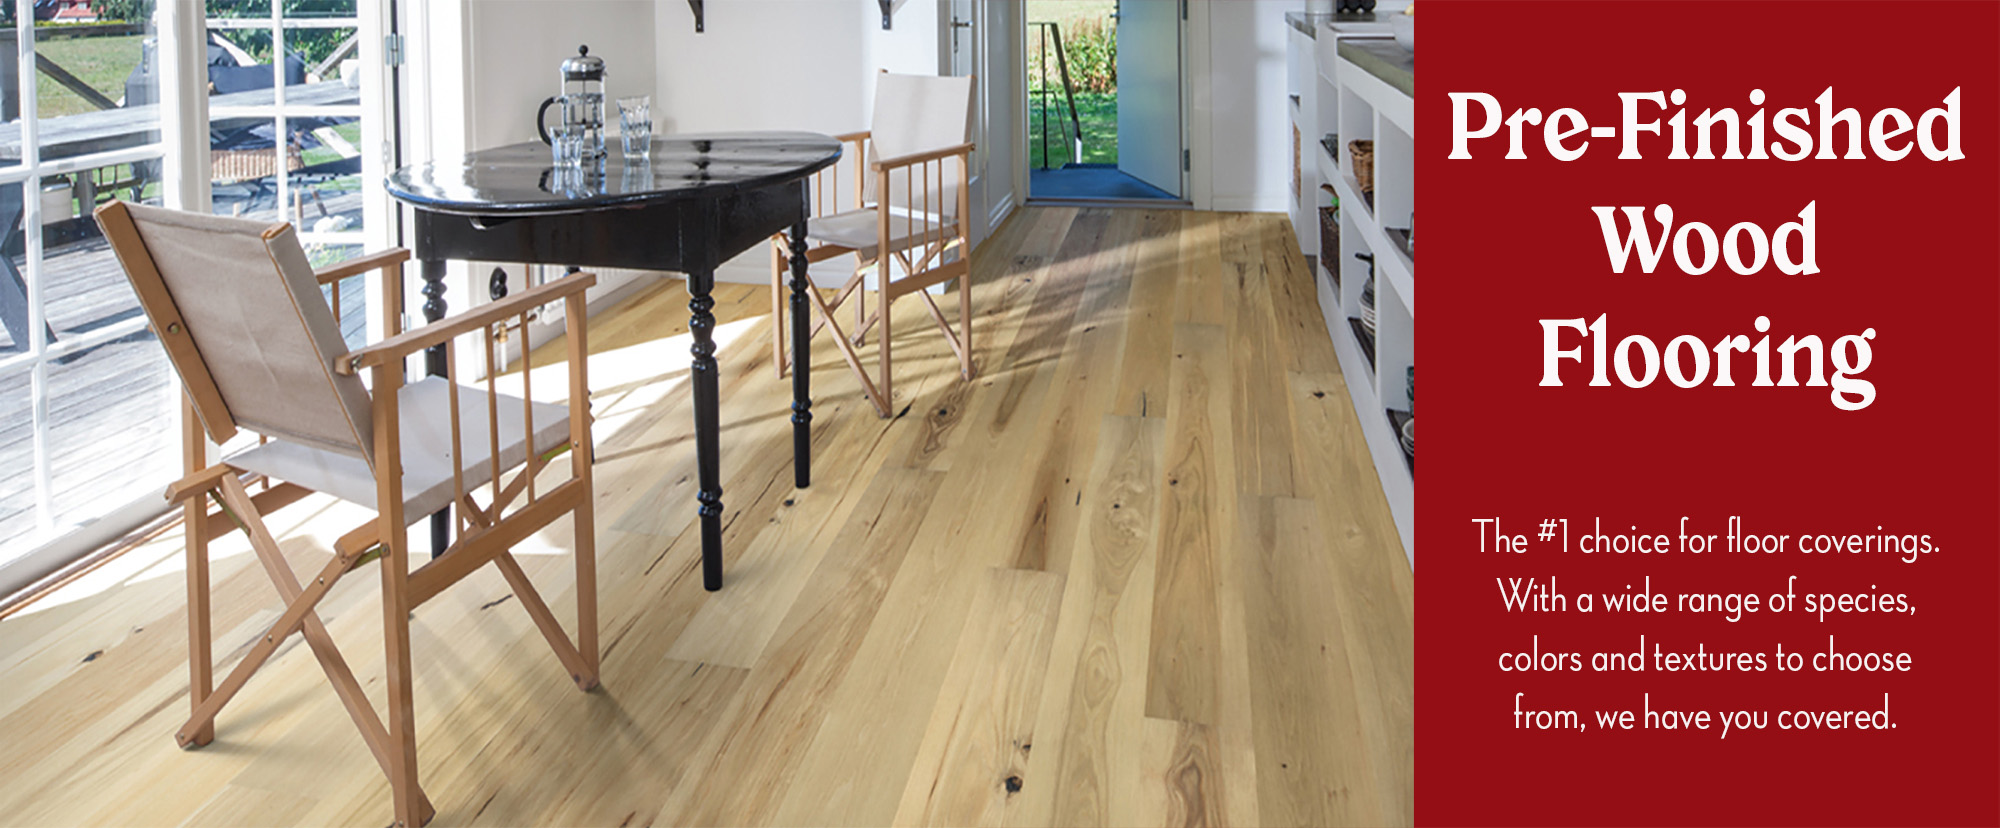 pre-finished-wood-flooring